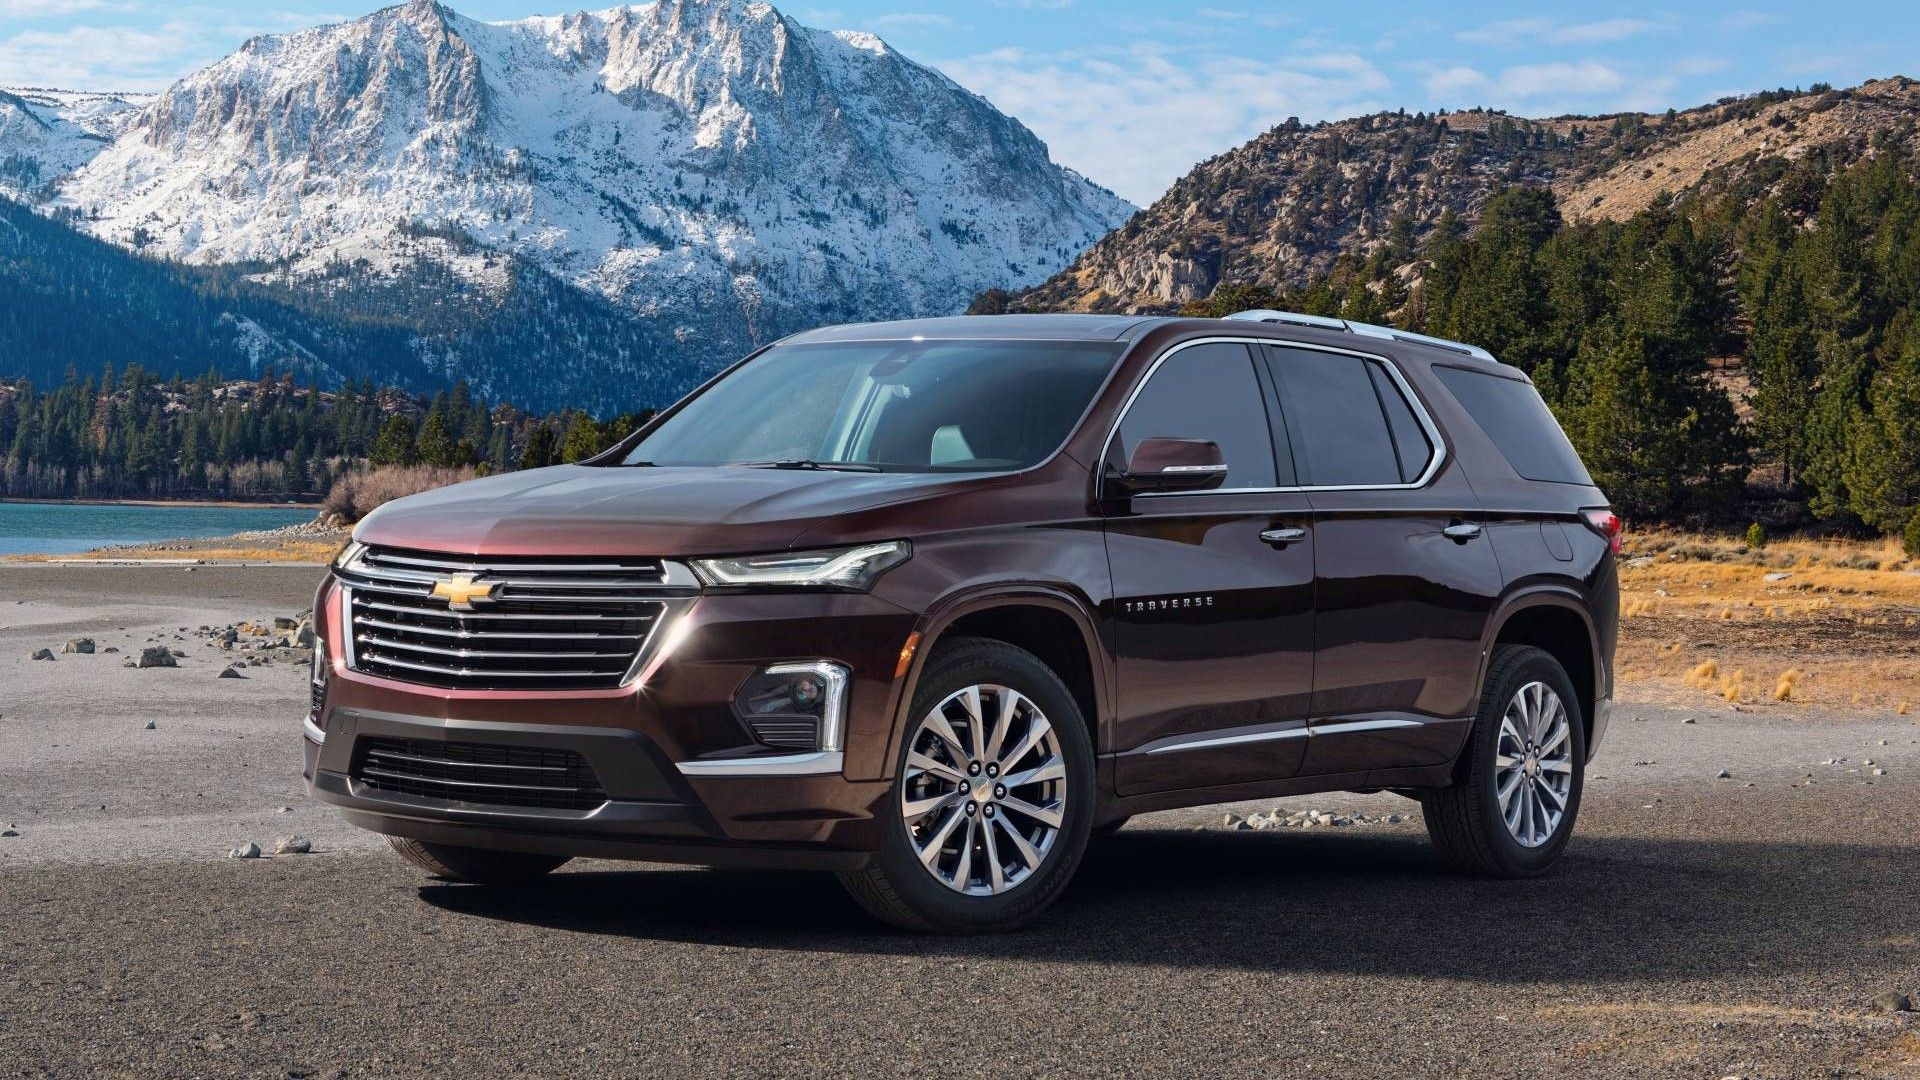 2021 chevrolet traverse review: trims, prices, features